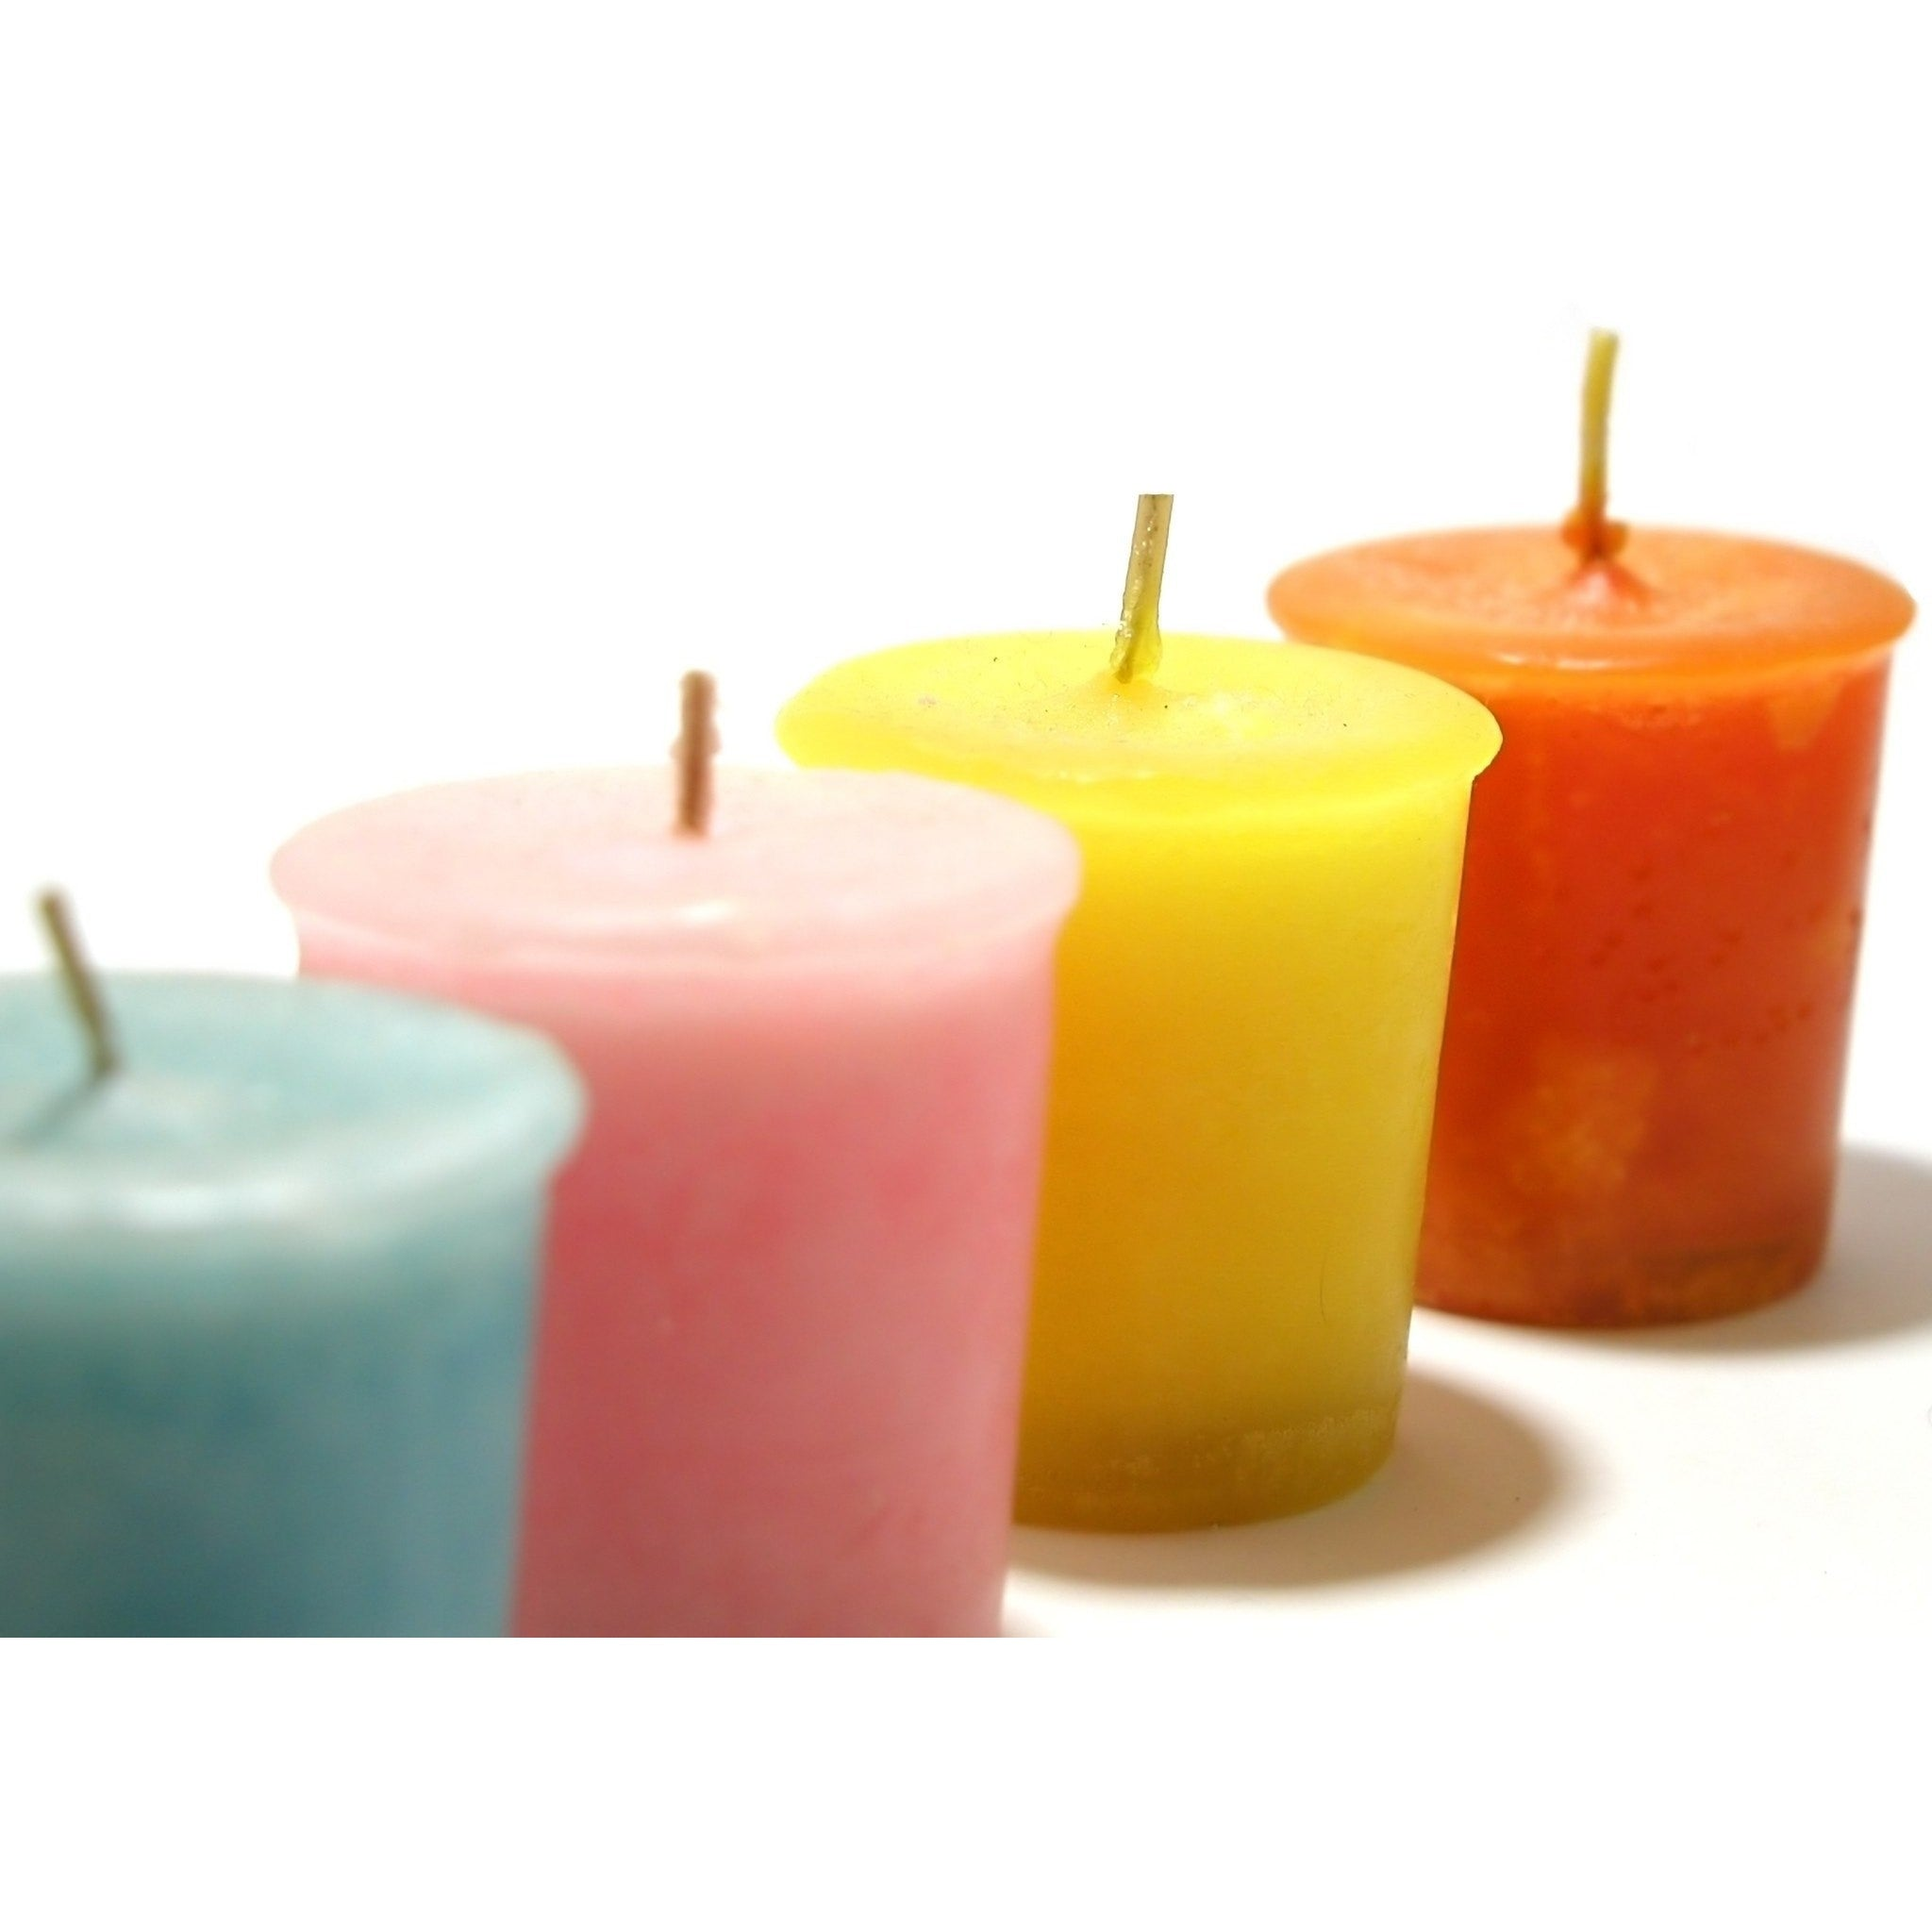 Voluptuous Vanilla Natural Hand Poured Soy Candles - Votive-Single - Bella-Mia Naturals All Natural Soy Candles & Lip Balms - 10